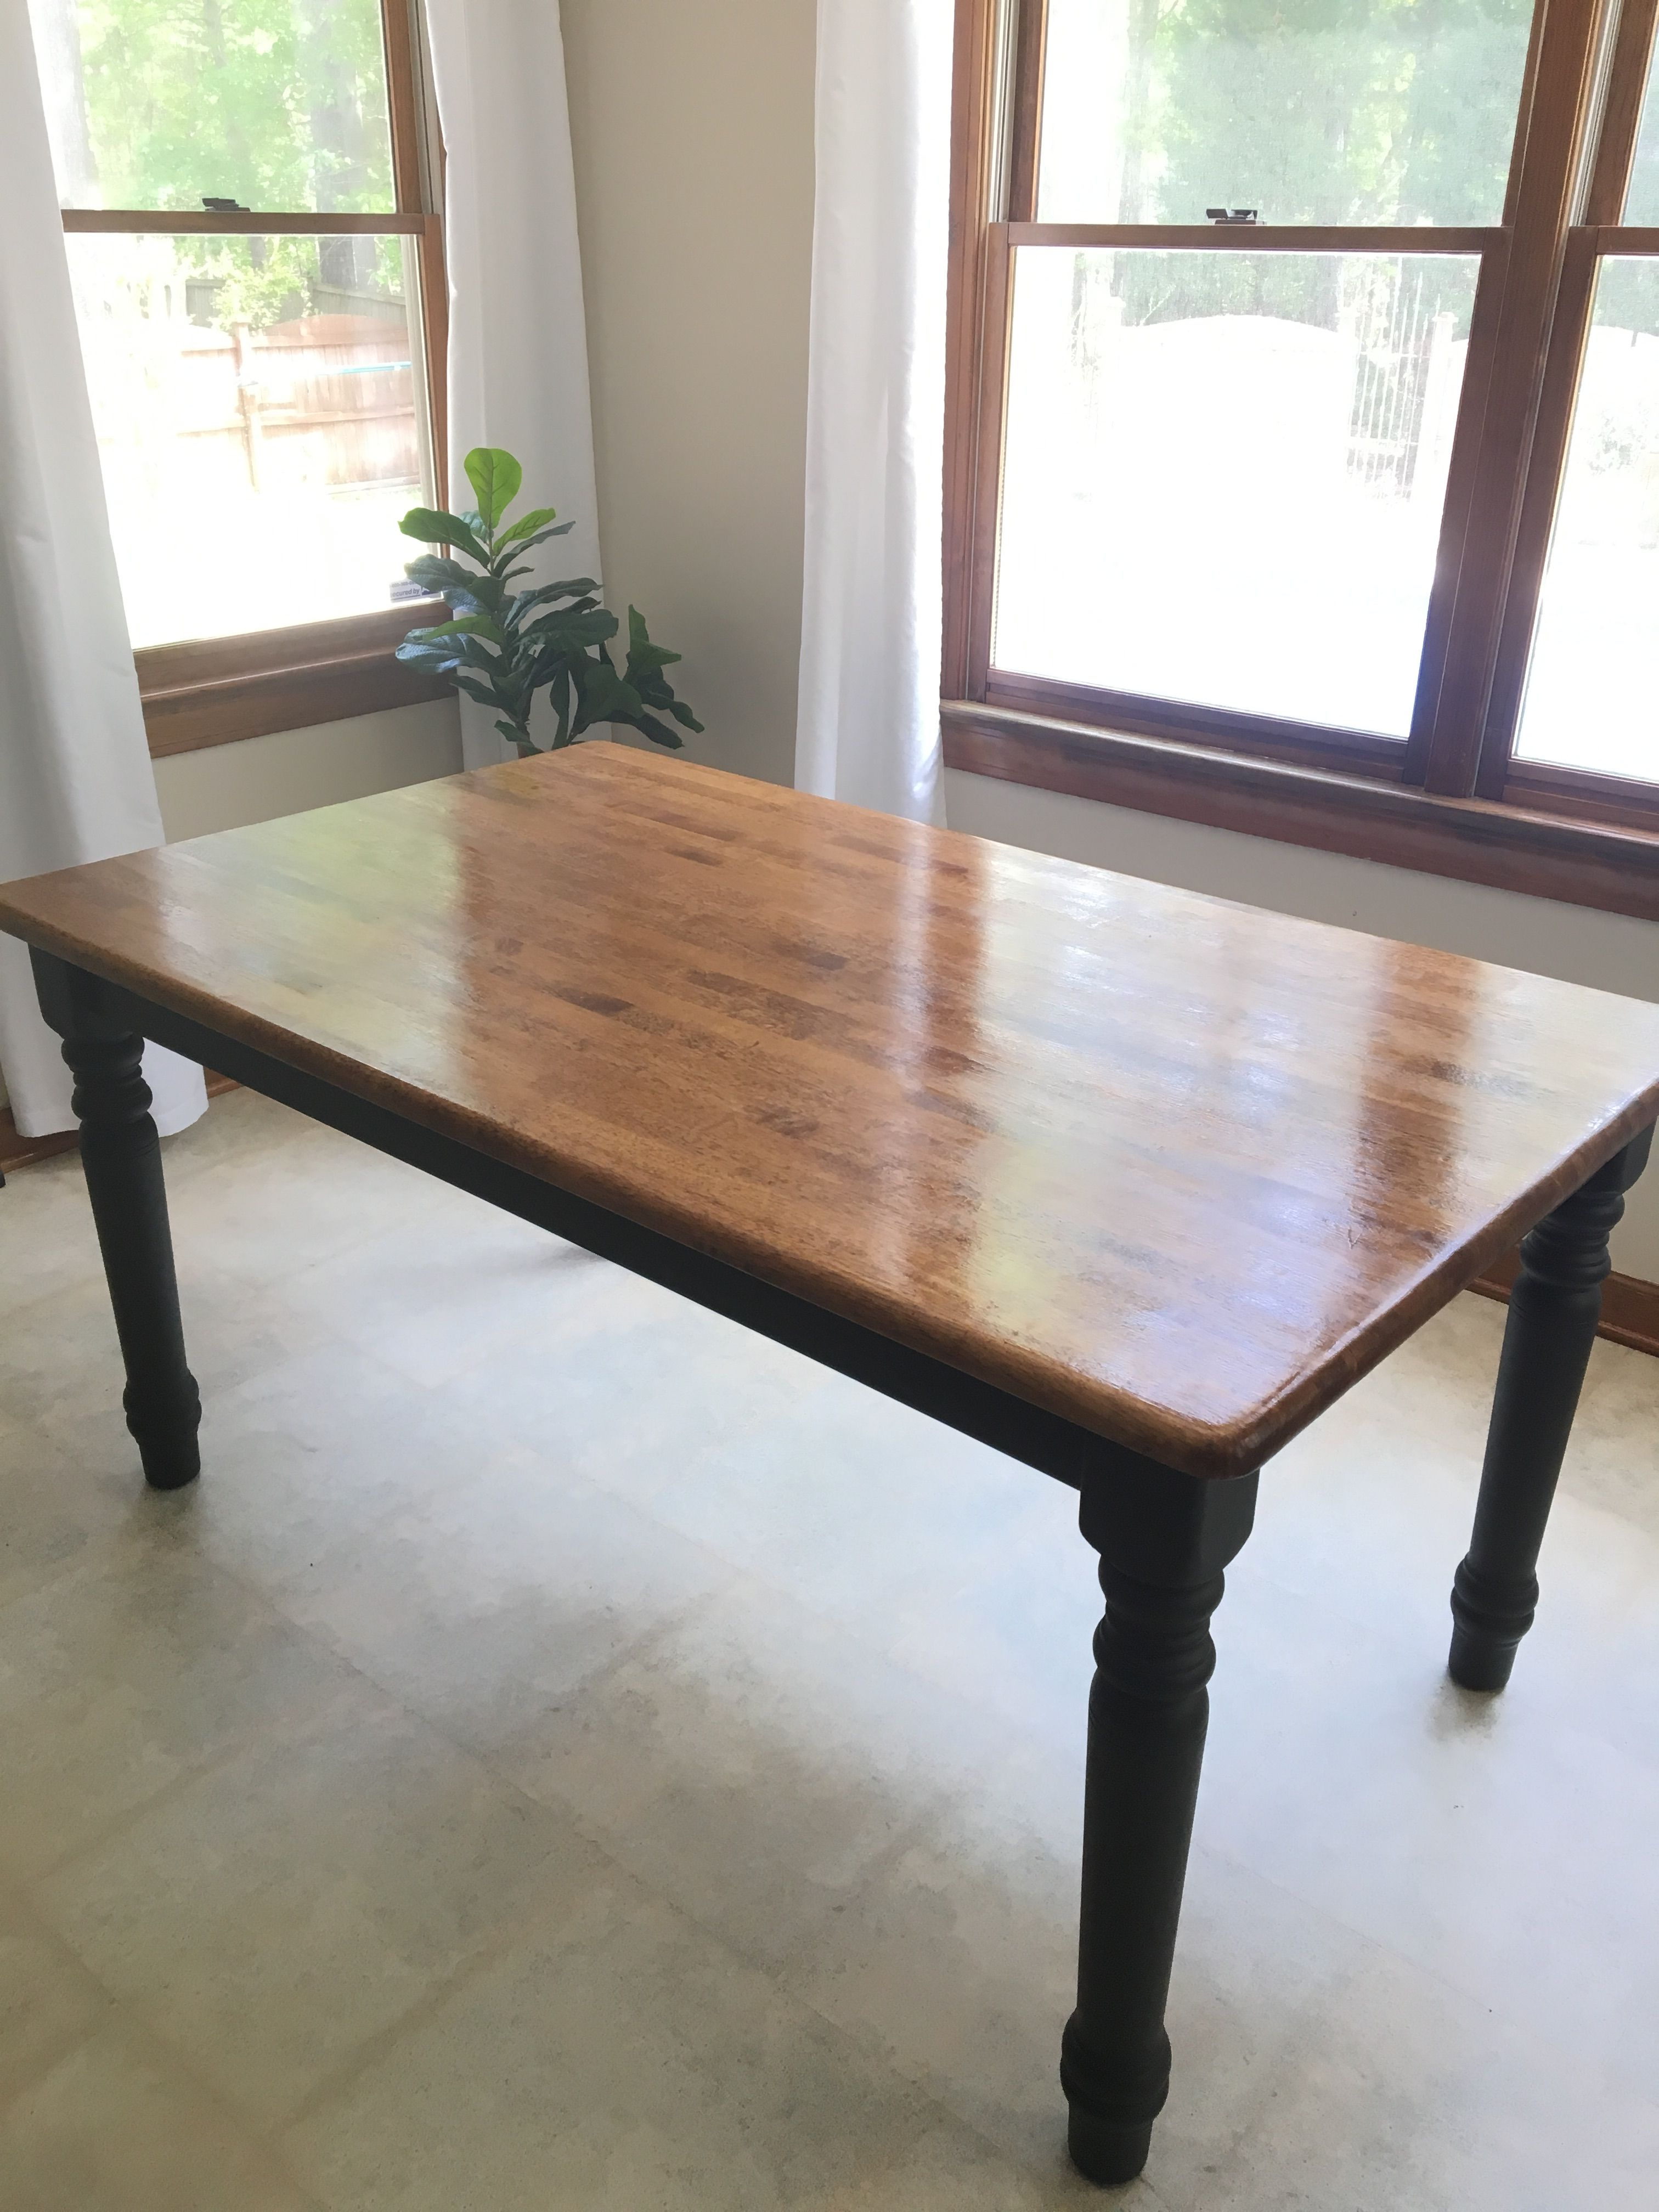 After Bought A Solid Wood Turned Leg Table Fo 30 Sanded Top To Bare Wood And Stained With Minwax Refinishing Furniture Turned Table Legs Furniture Makeover